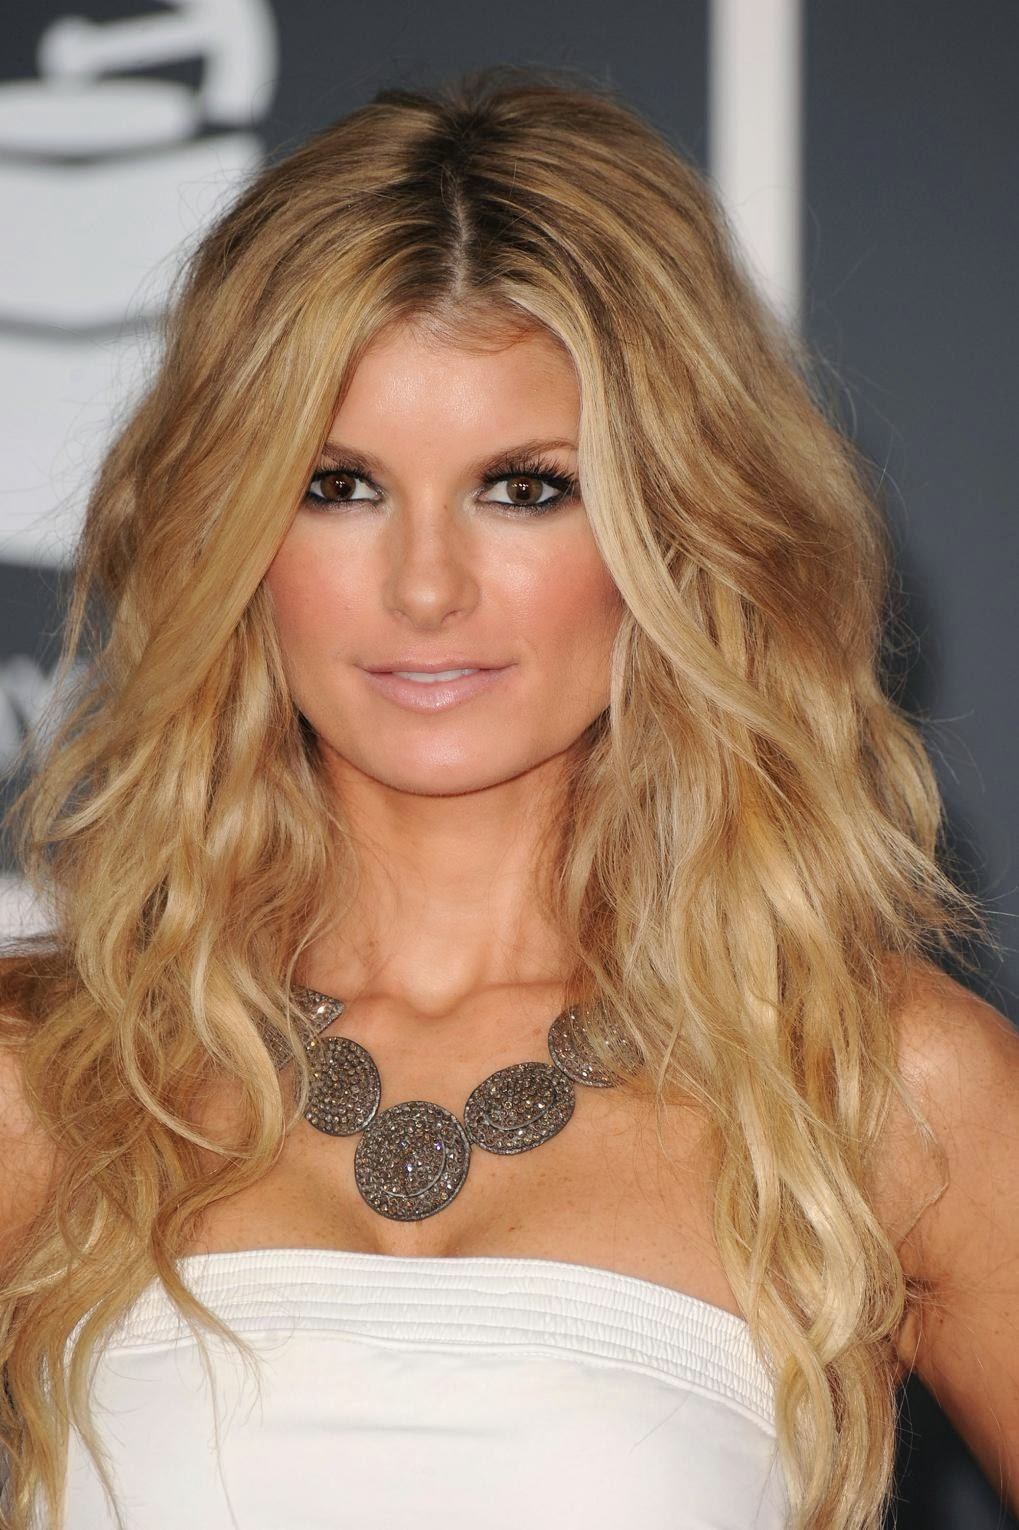 Hair and There: BEST HAIR STYLE COUNTDOWN FOR 2013